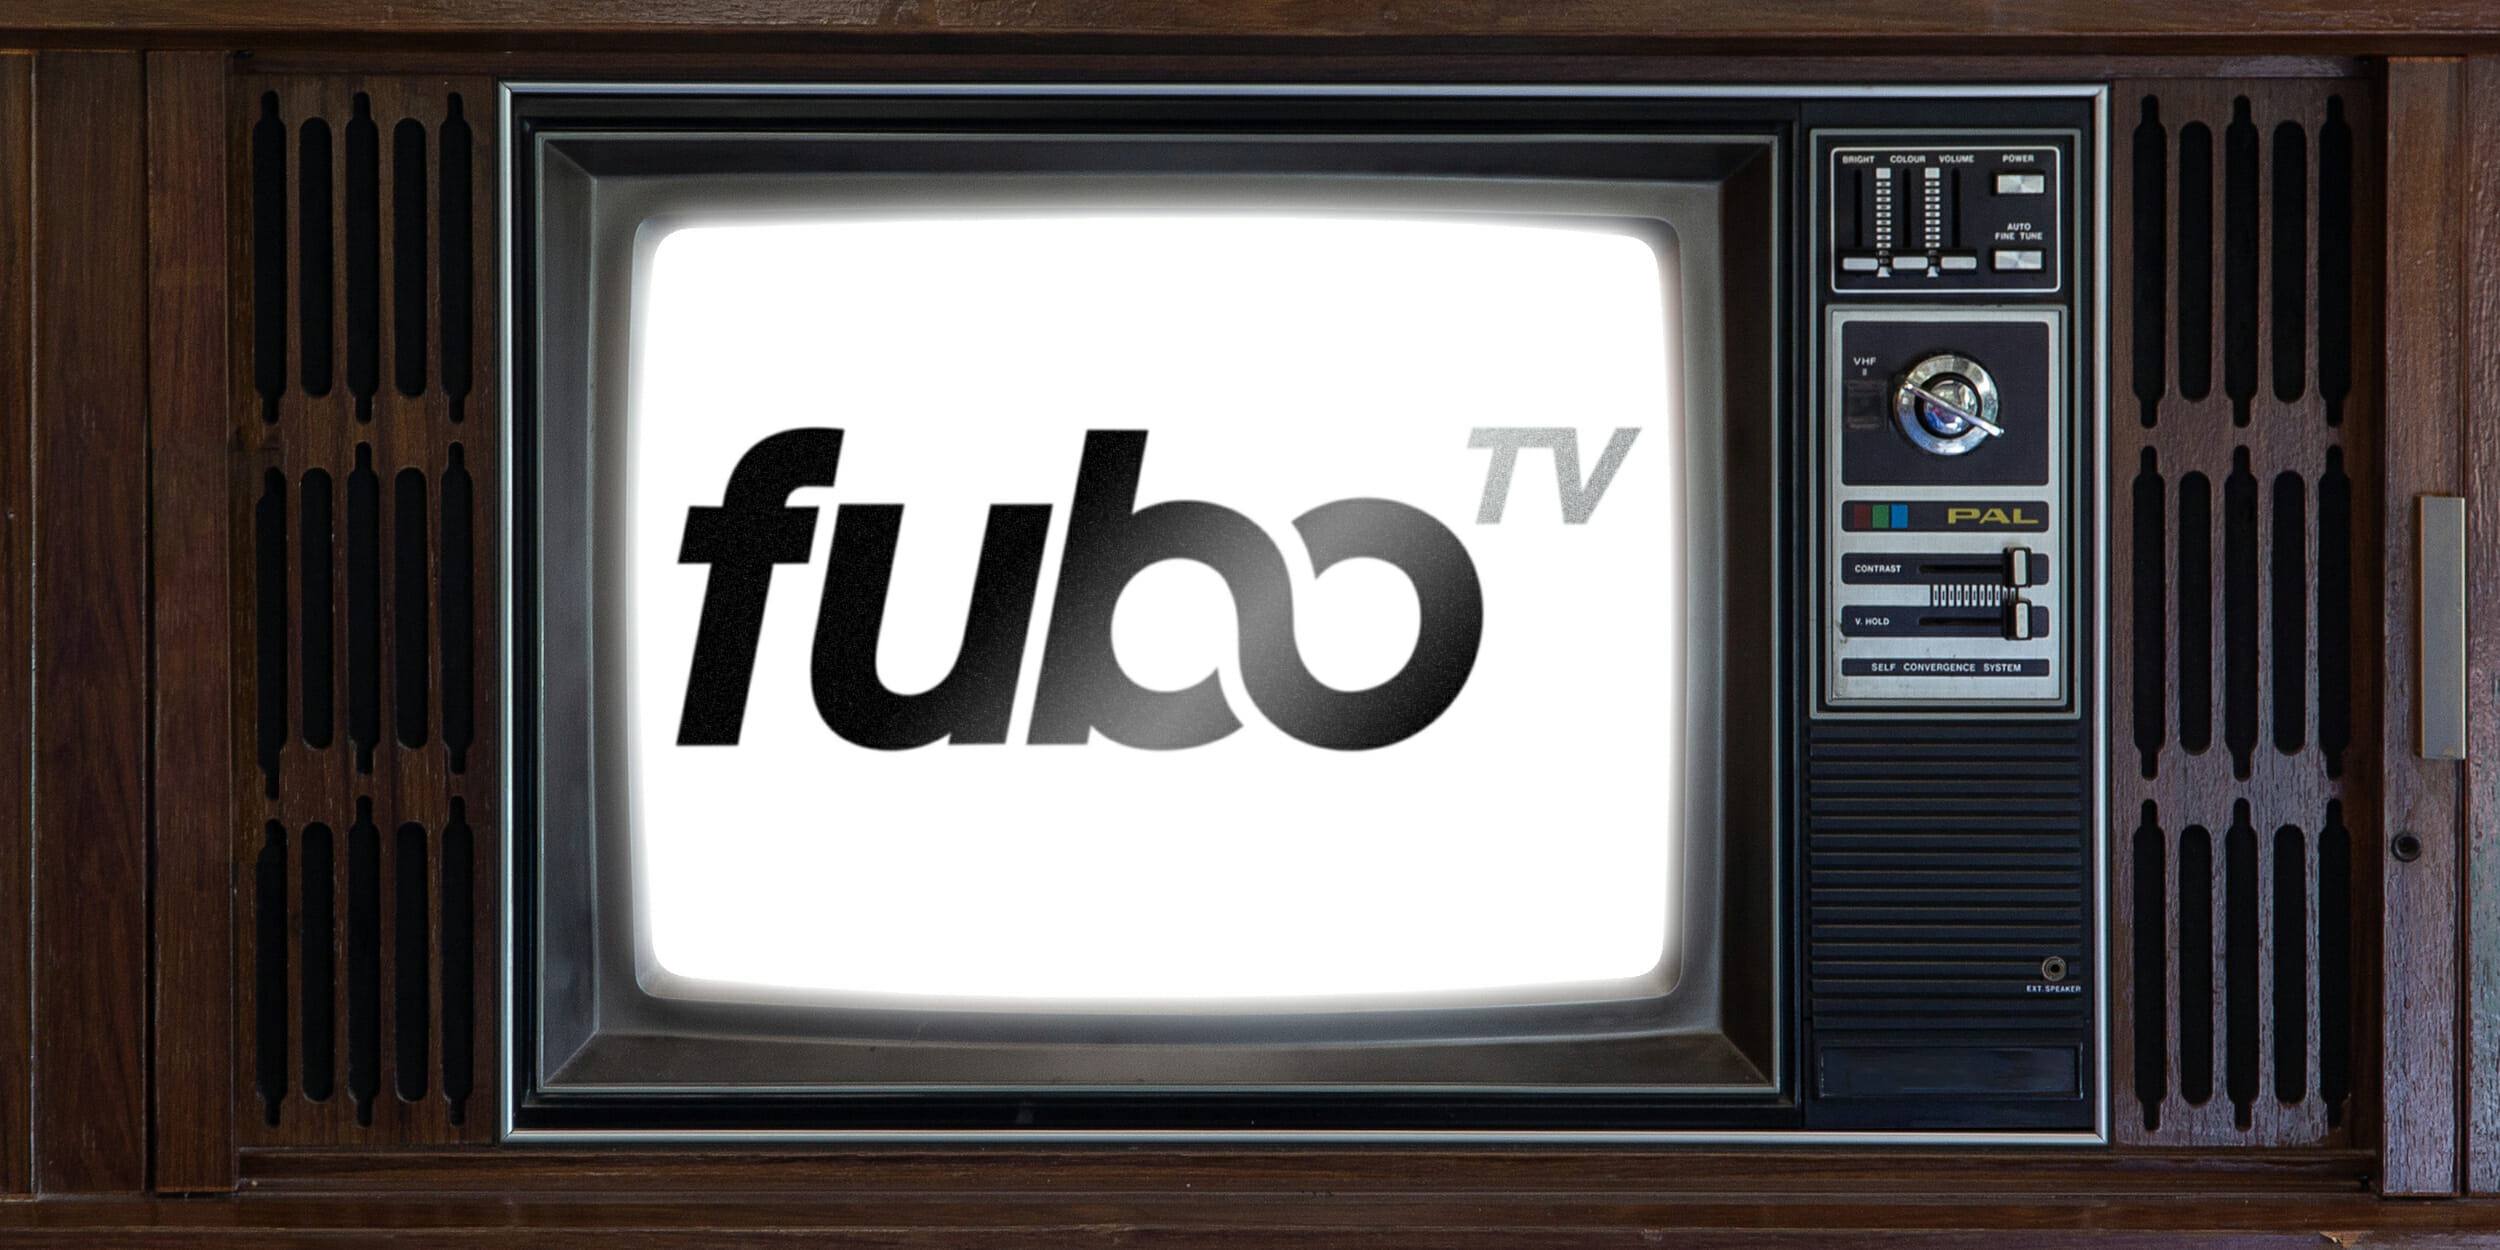 FuboTV Local Channels: Here's How to See Which Channels You'll Get